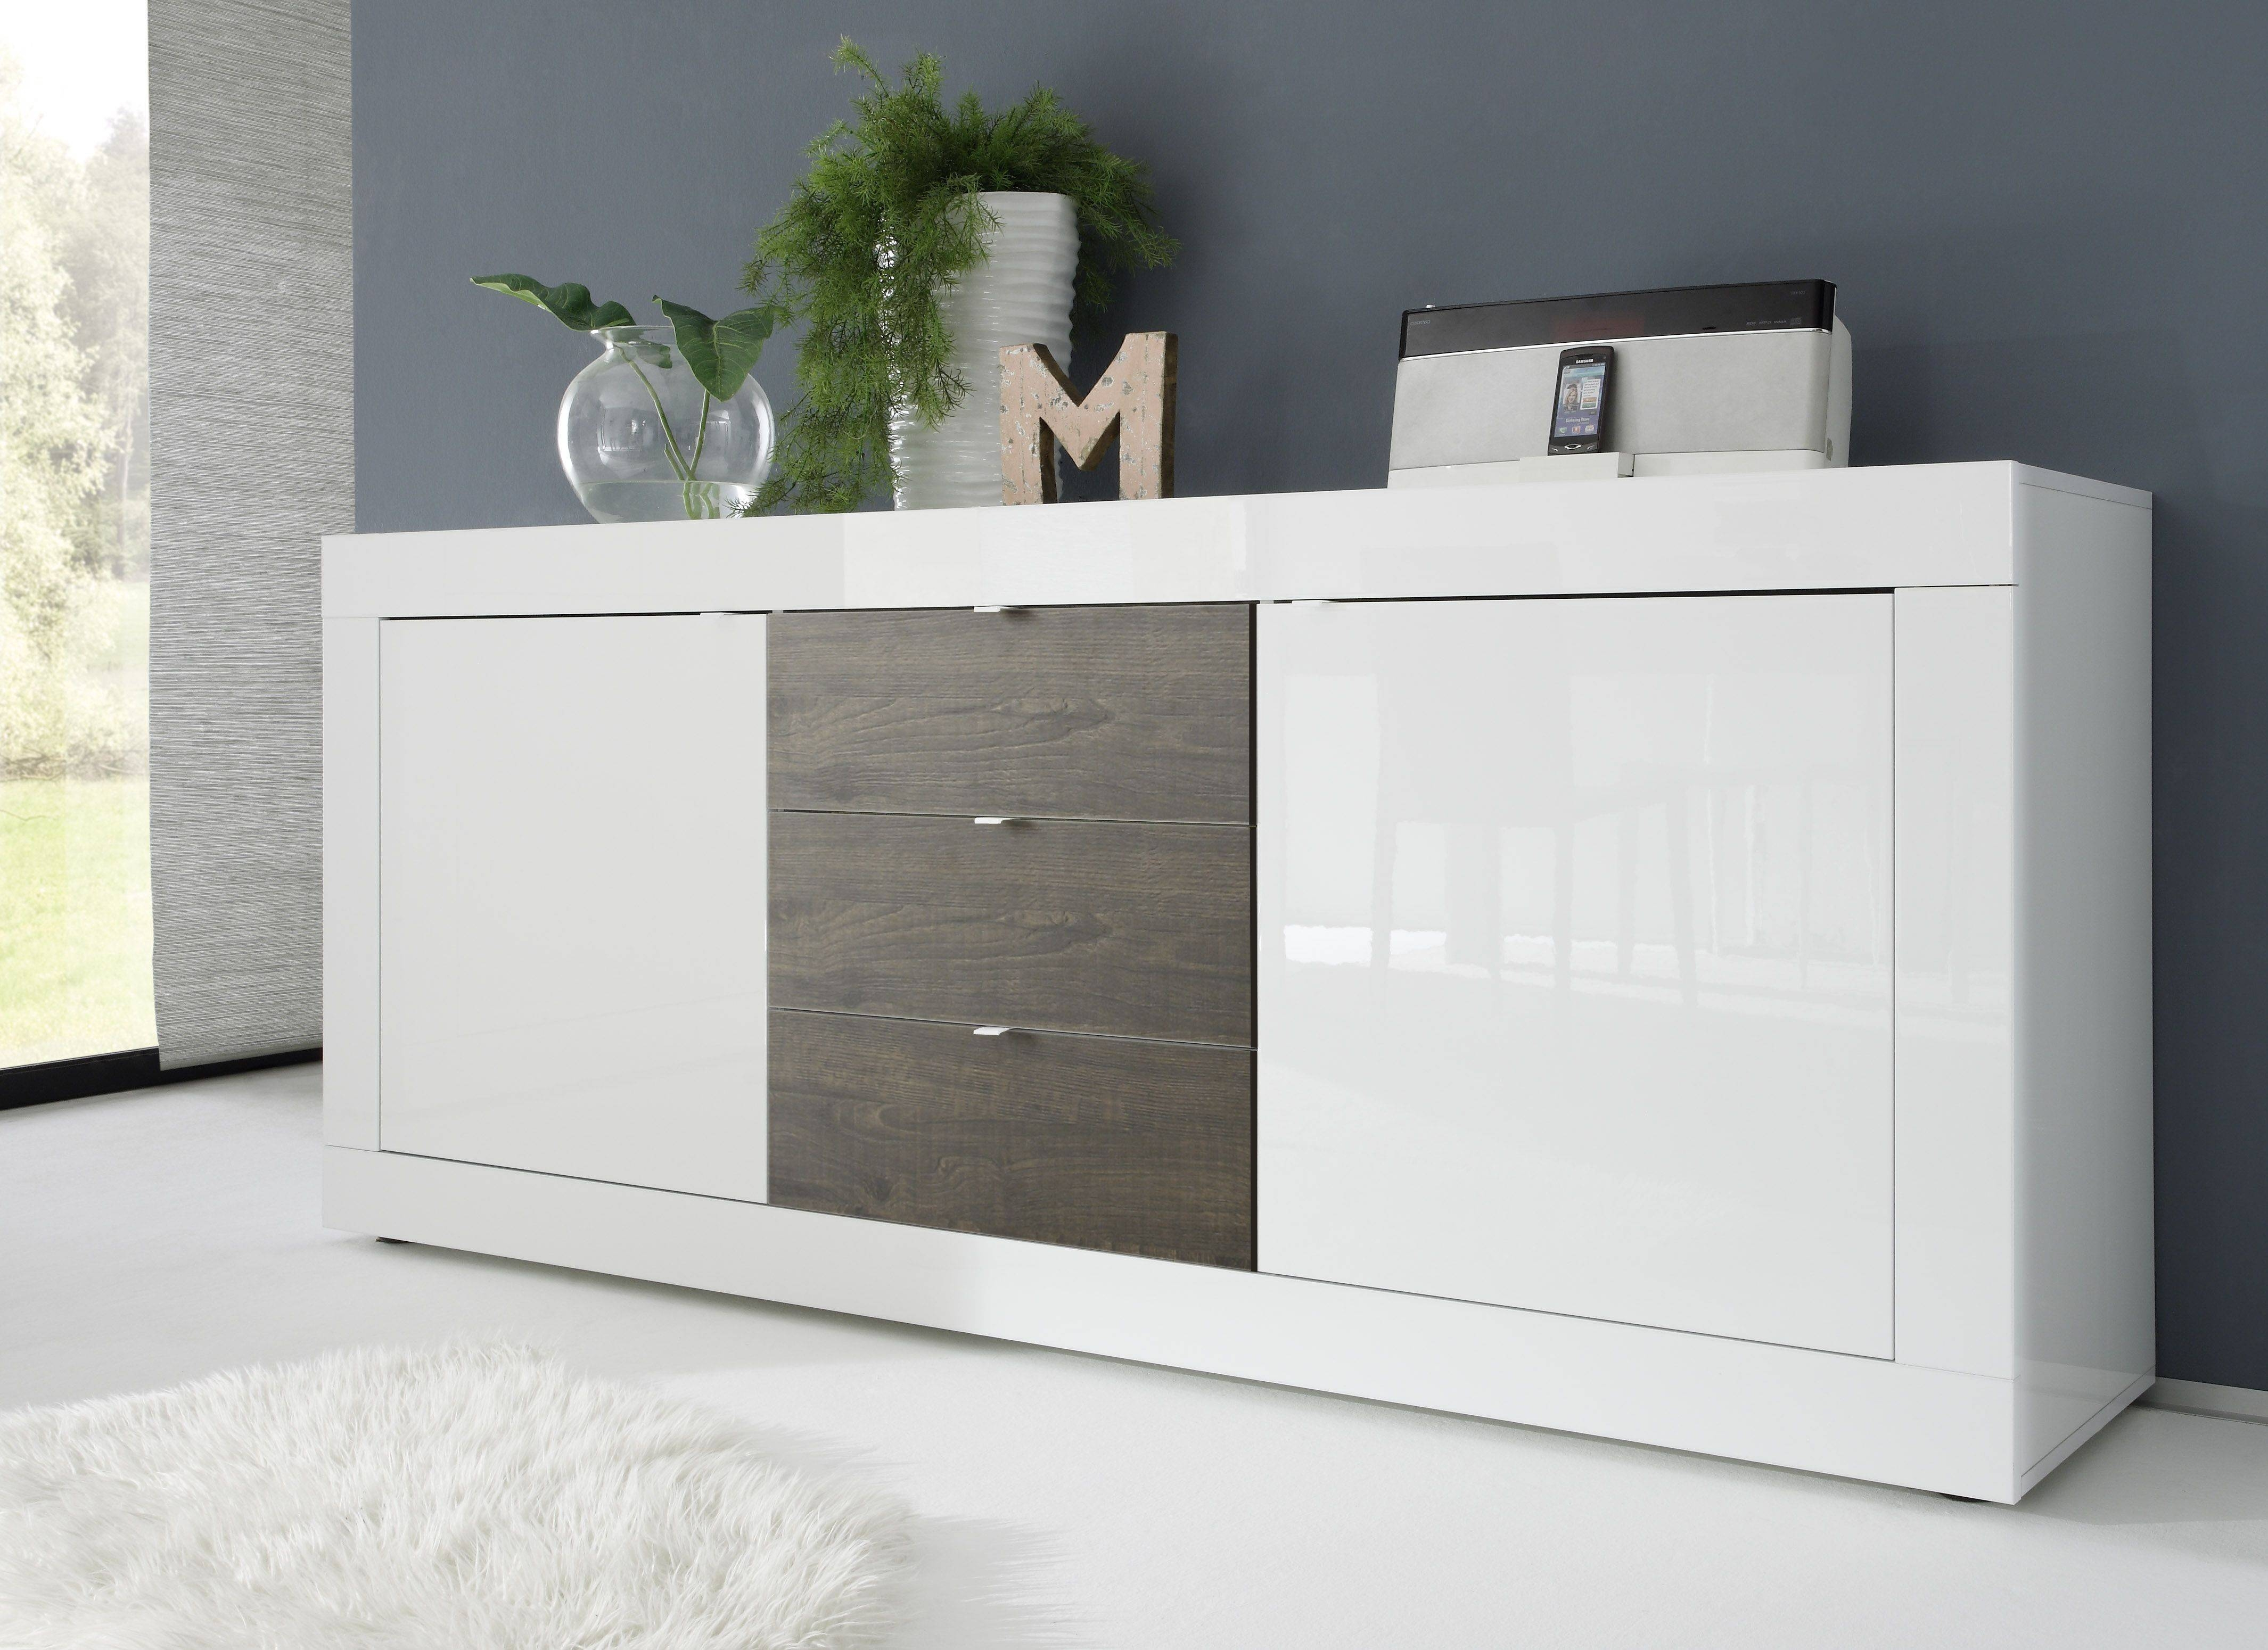 Dolcevita Ii White Gloss Sideboard - Sideboards - Sena Home Furniture with Grey Gloss Sideboards (Image 6 of 30)